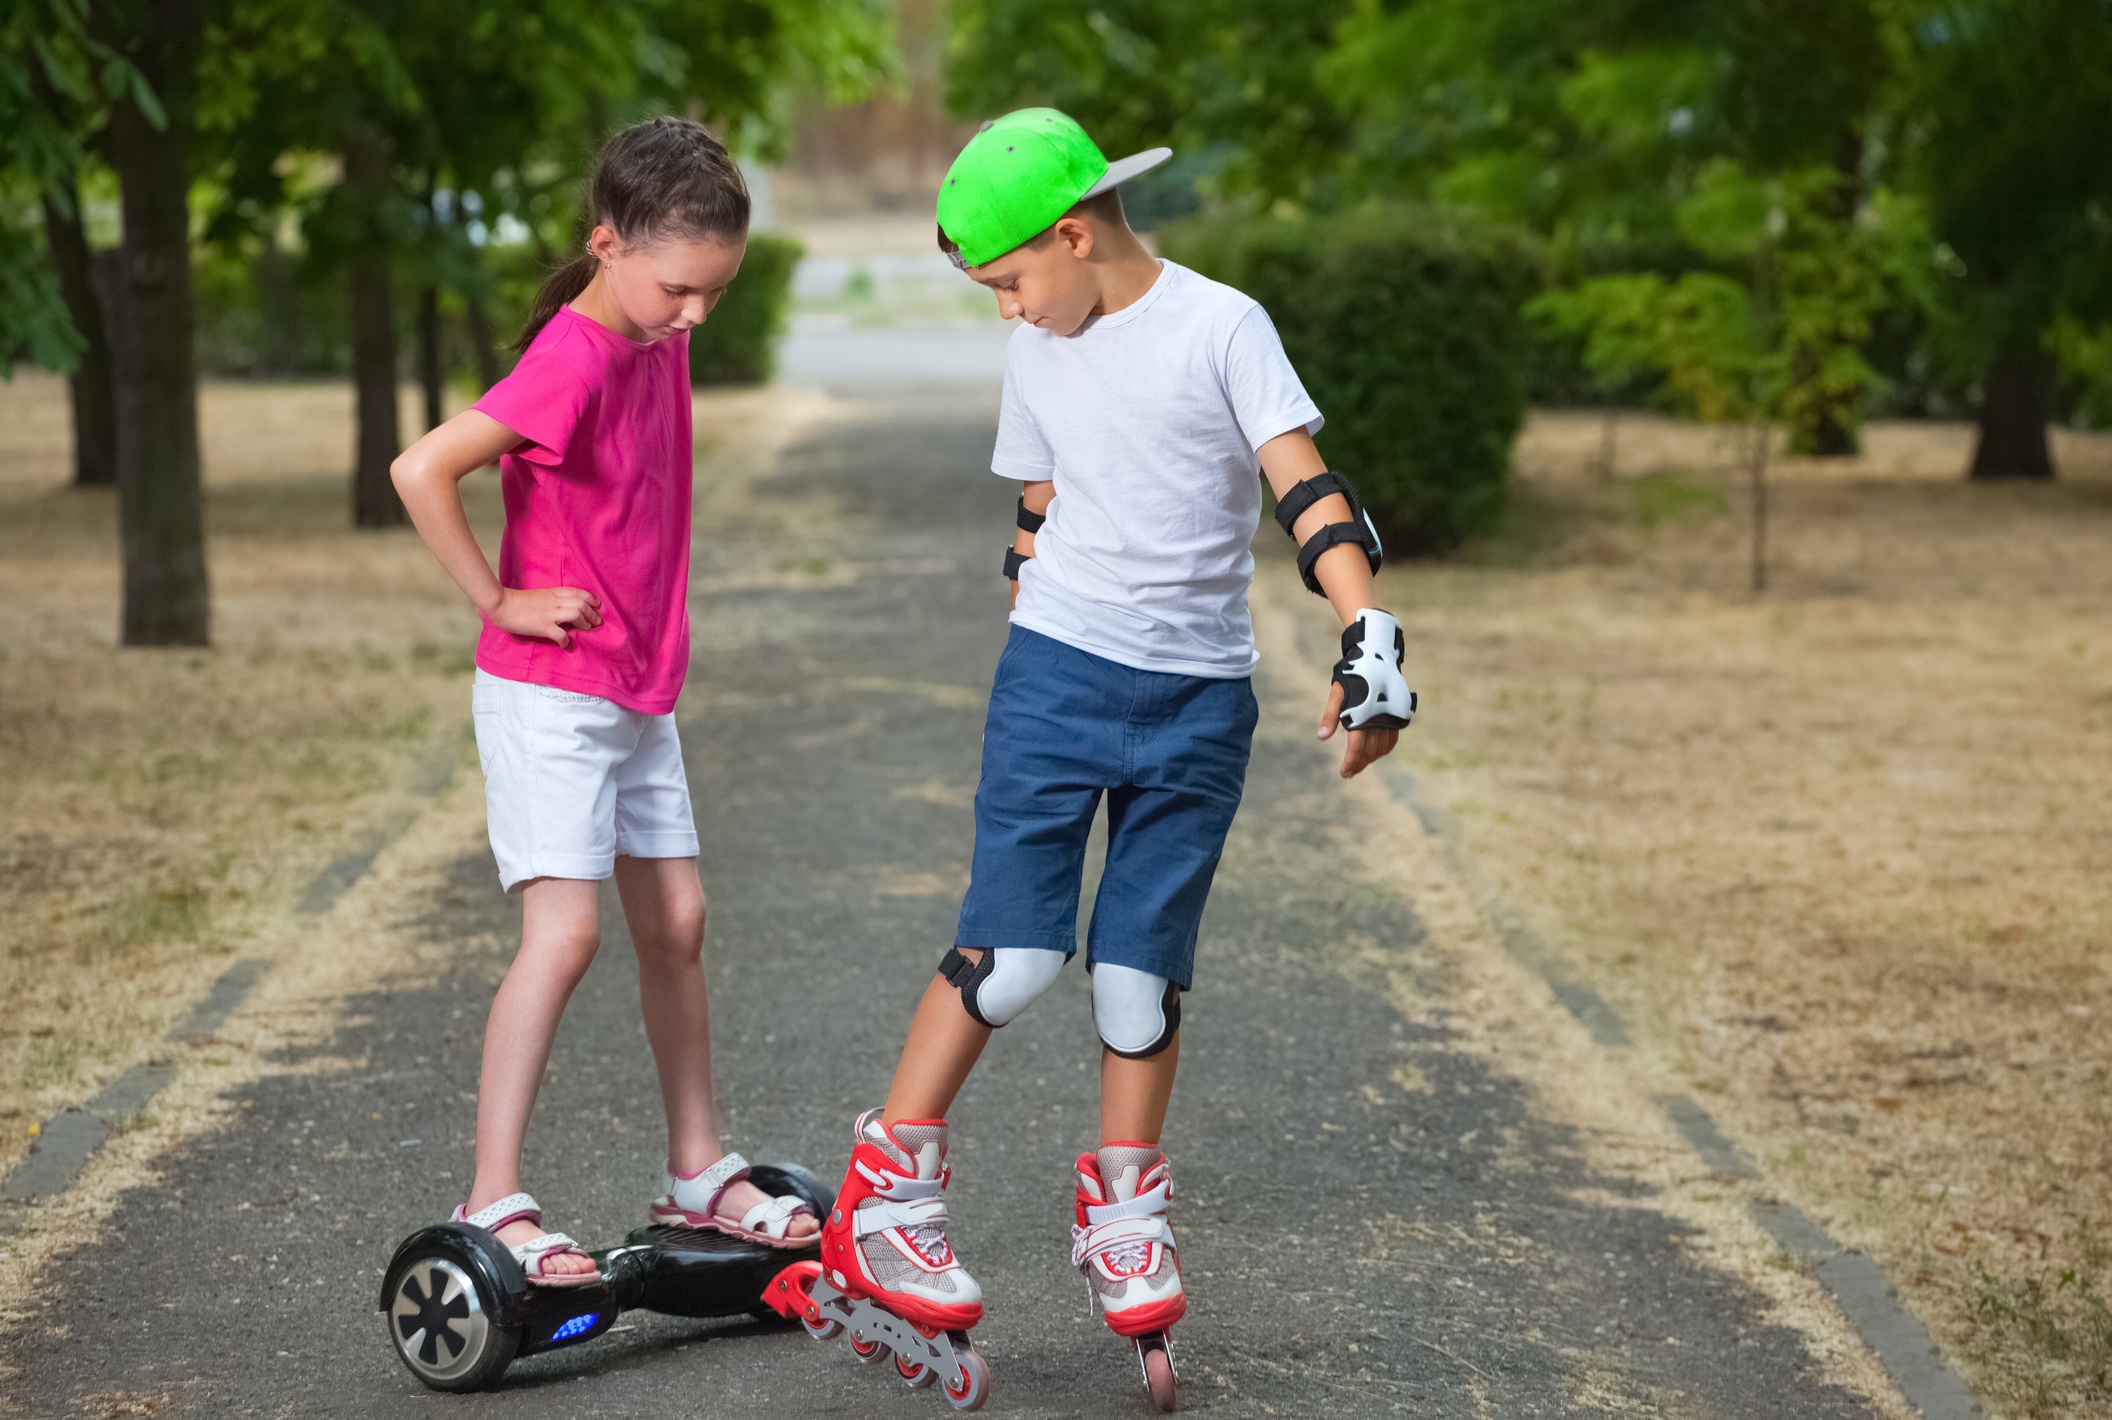 Hover board Injury Attorney